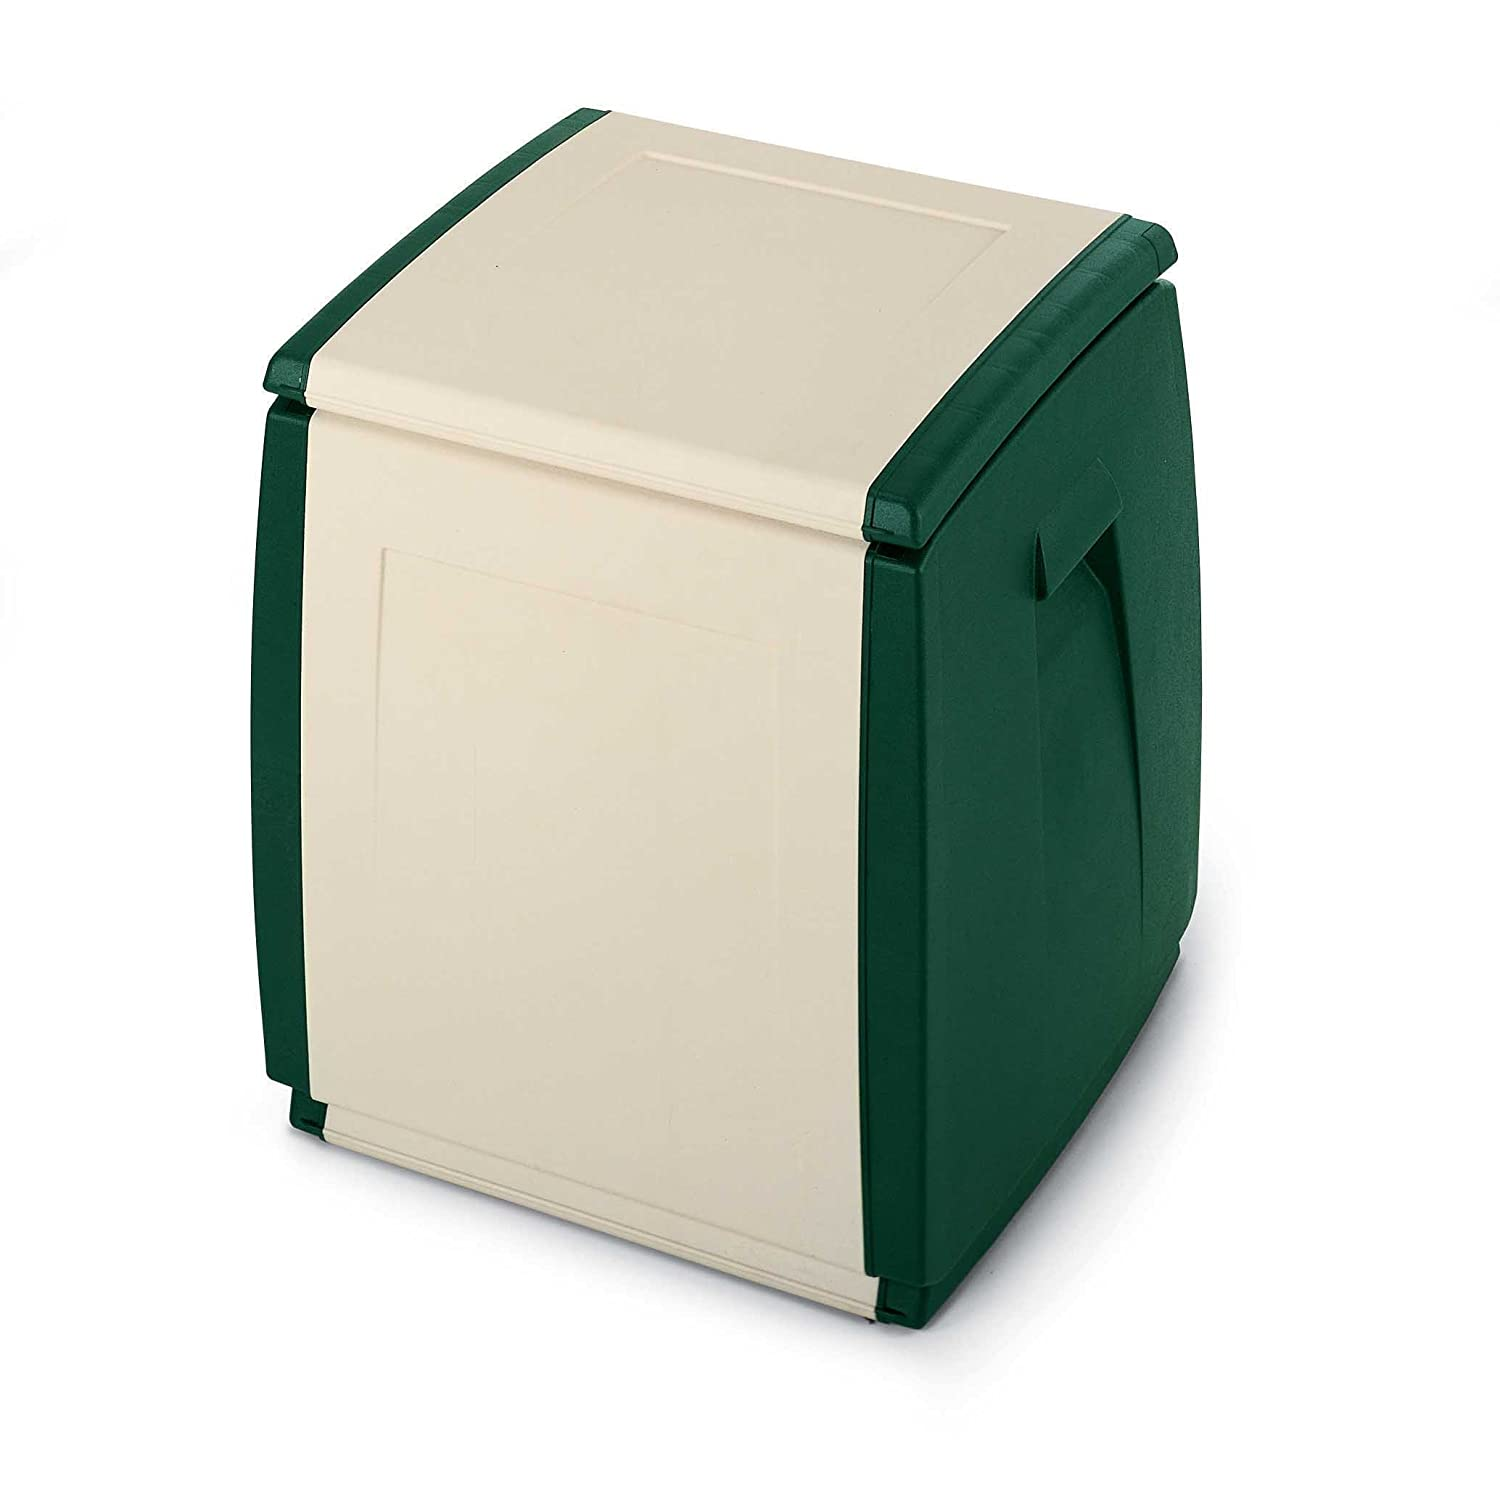 TERRY In & out Box 55 Baule in Plastica, Beige/Verde, 54 x 54 x 57 cm Terry Store-Age 1001254